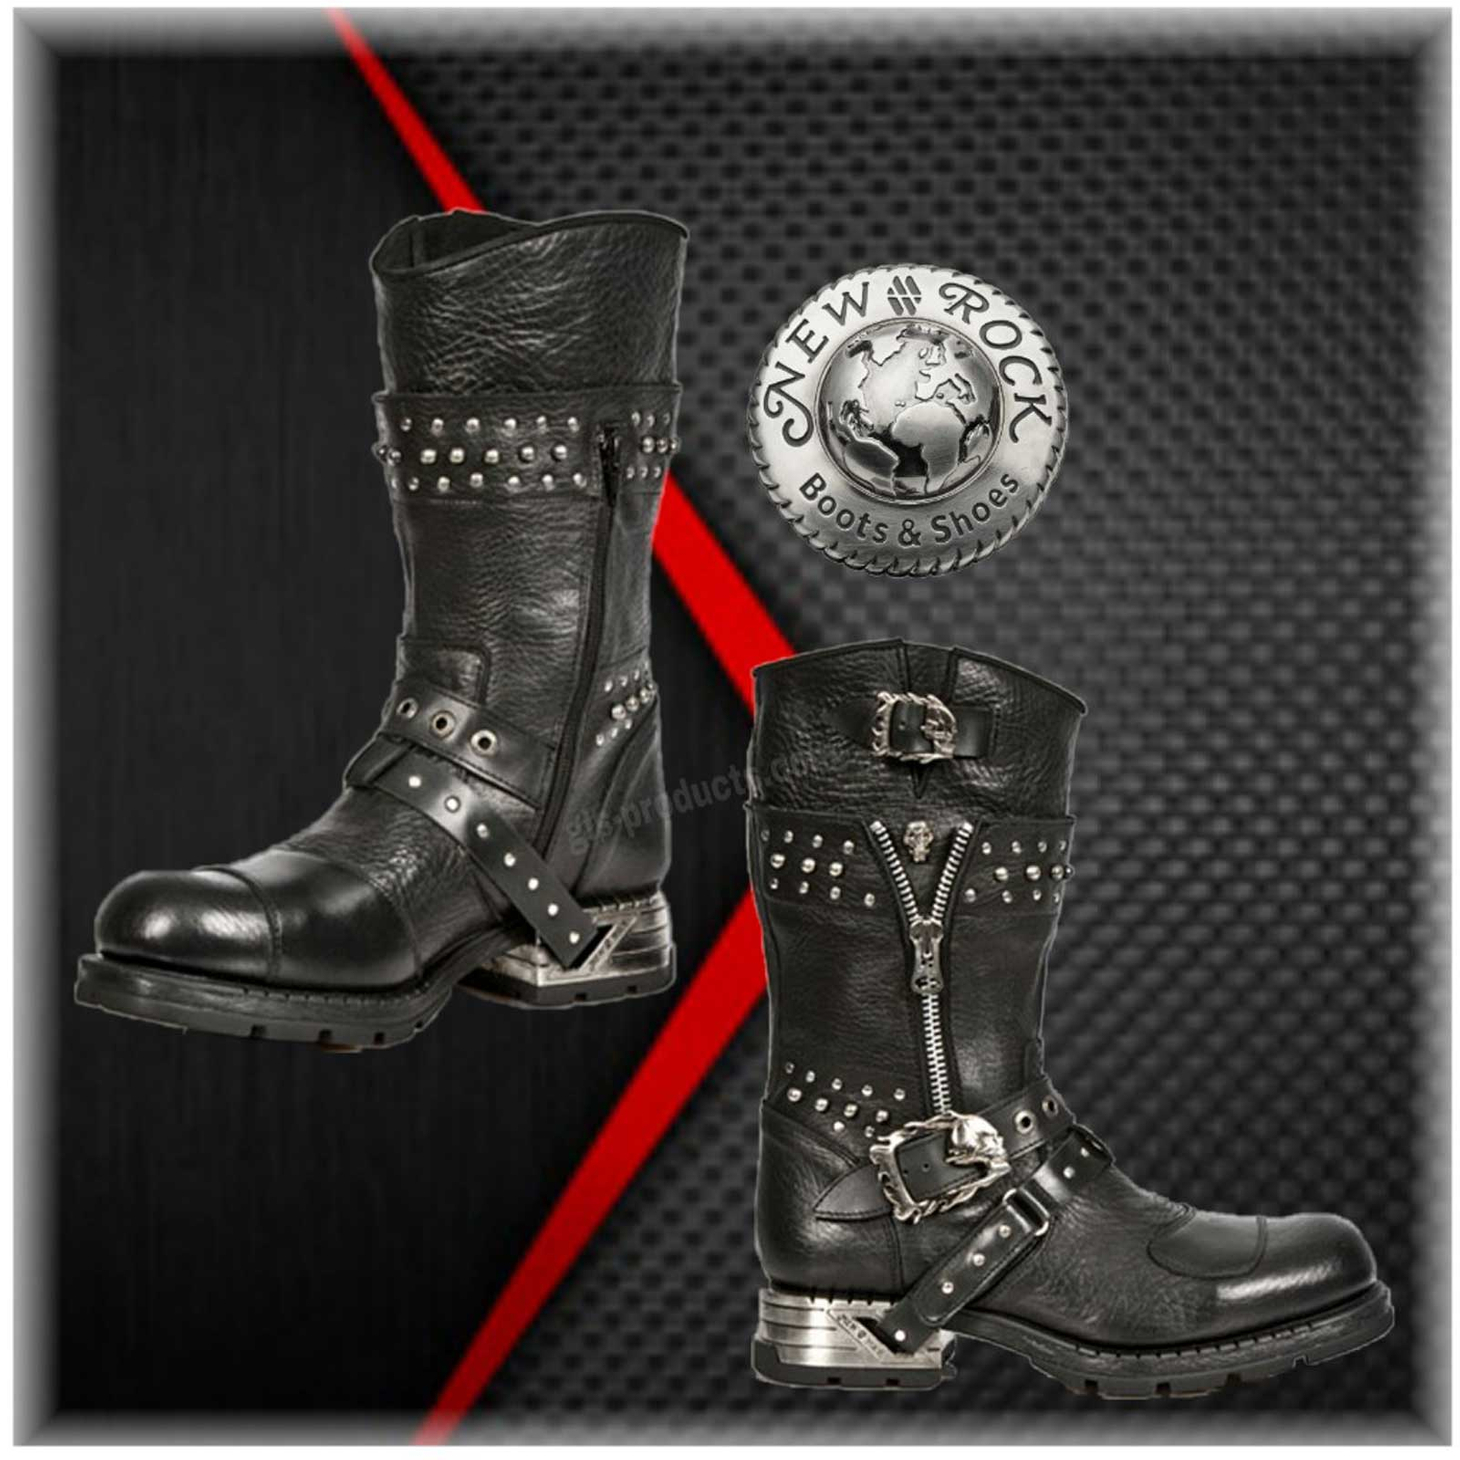 New Rock Engineer Boots MR022 with studs and zippers